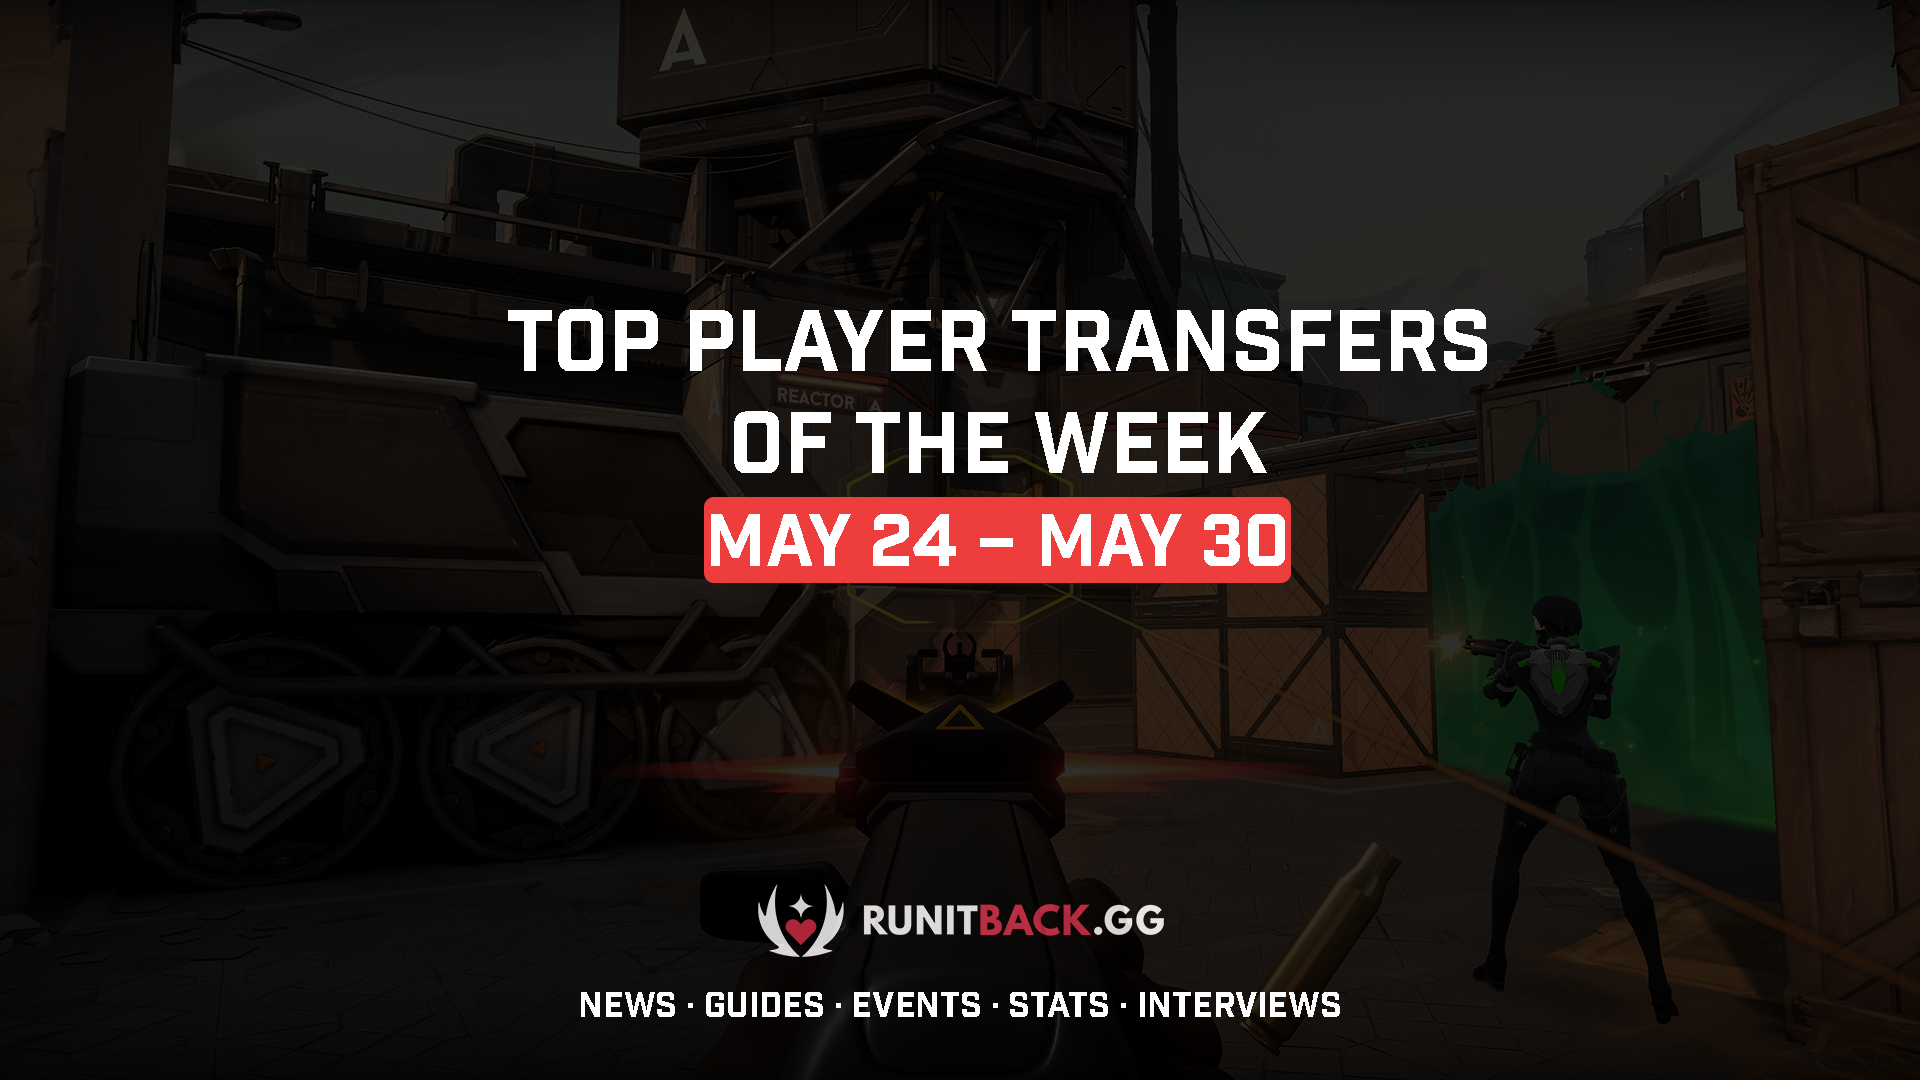 Top Player Transfers of the Week: May 24 – May 30